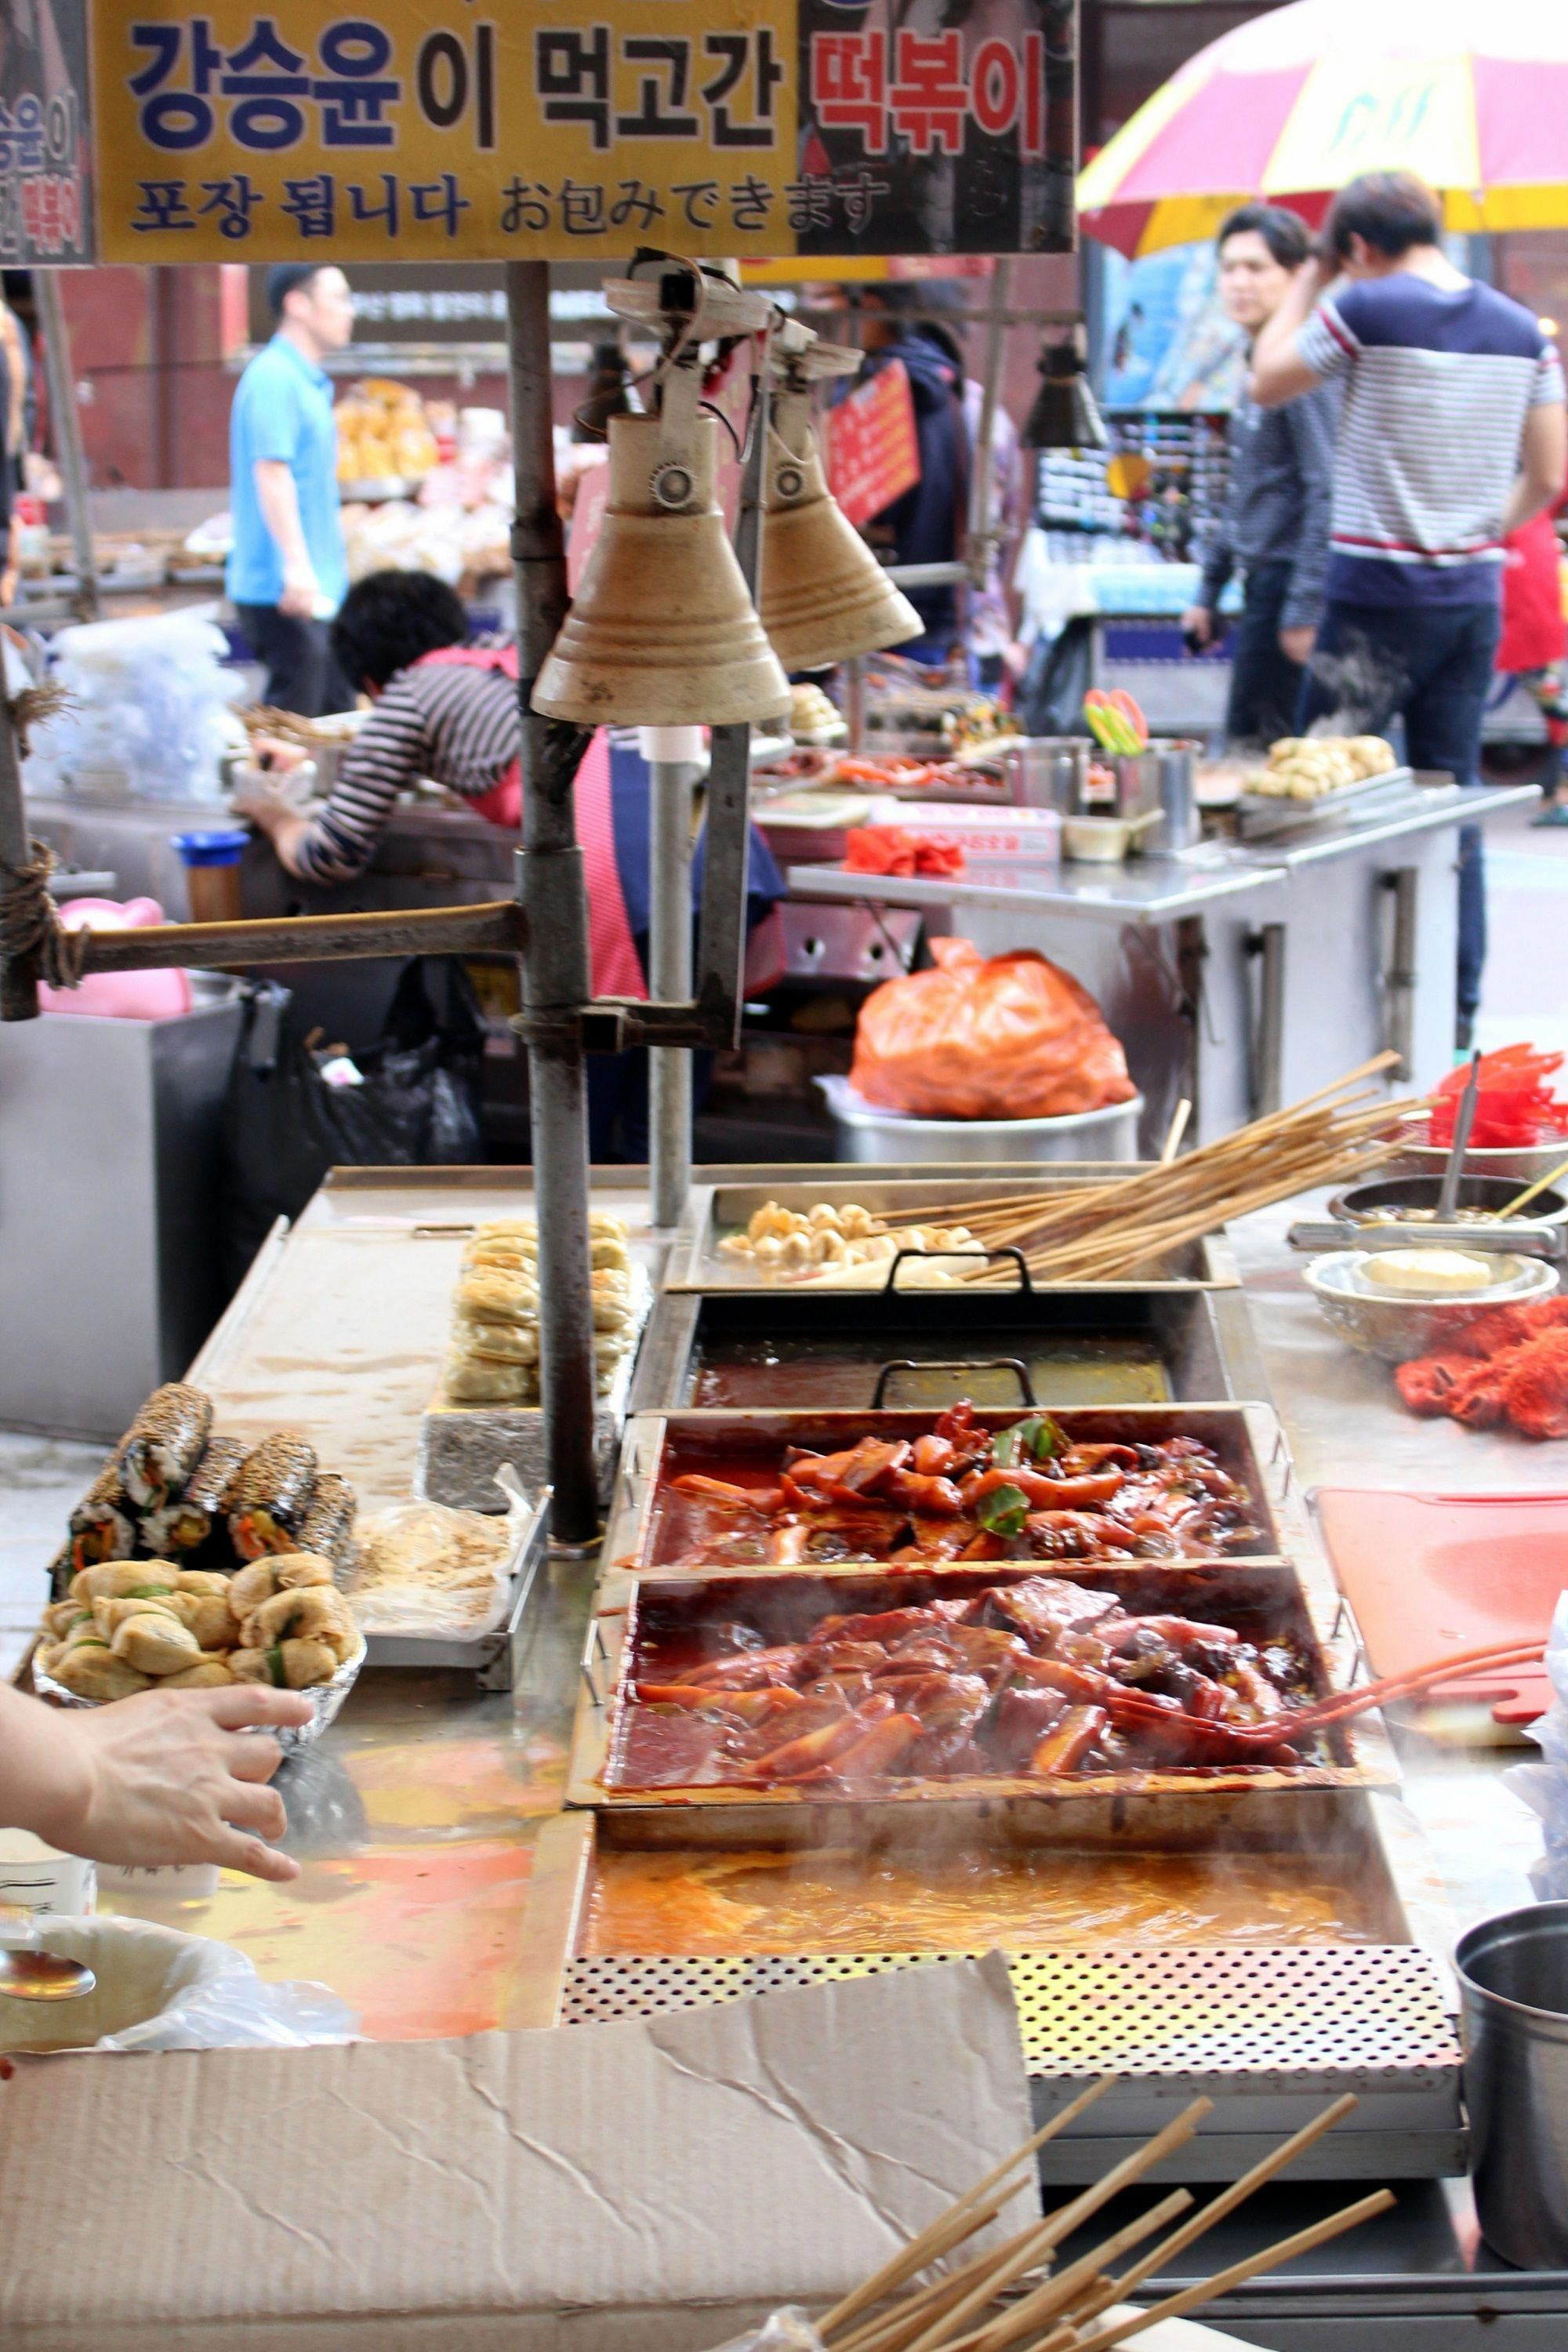 Street Food In Busan South Korea One Of The Things You Must Eat In South Korea Fashioninkorea South Korean Food Street Food Korean Dishes